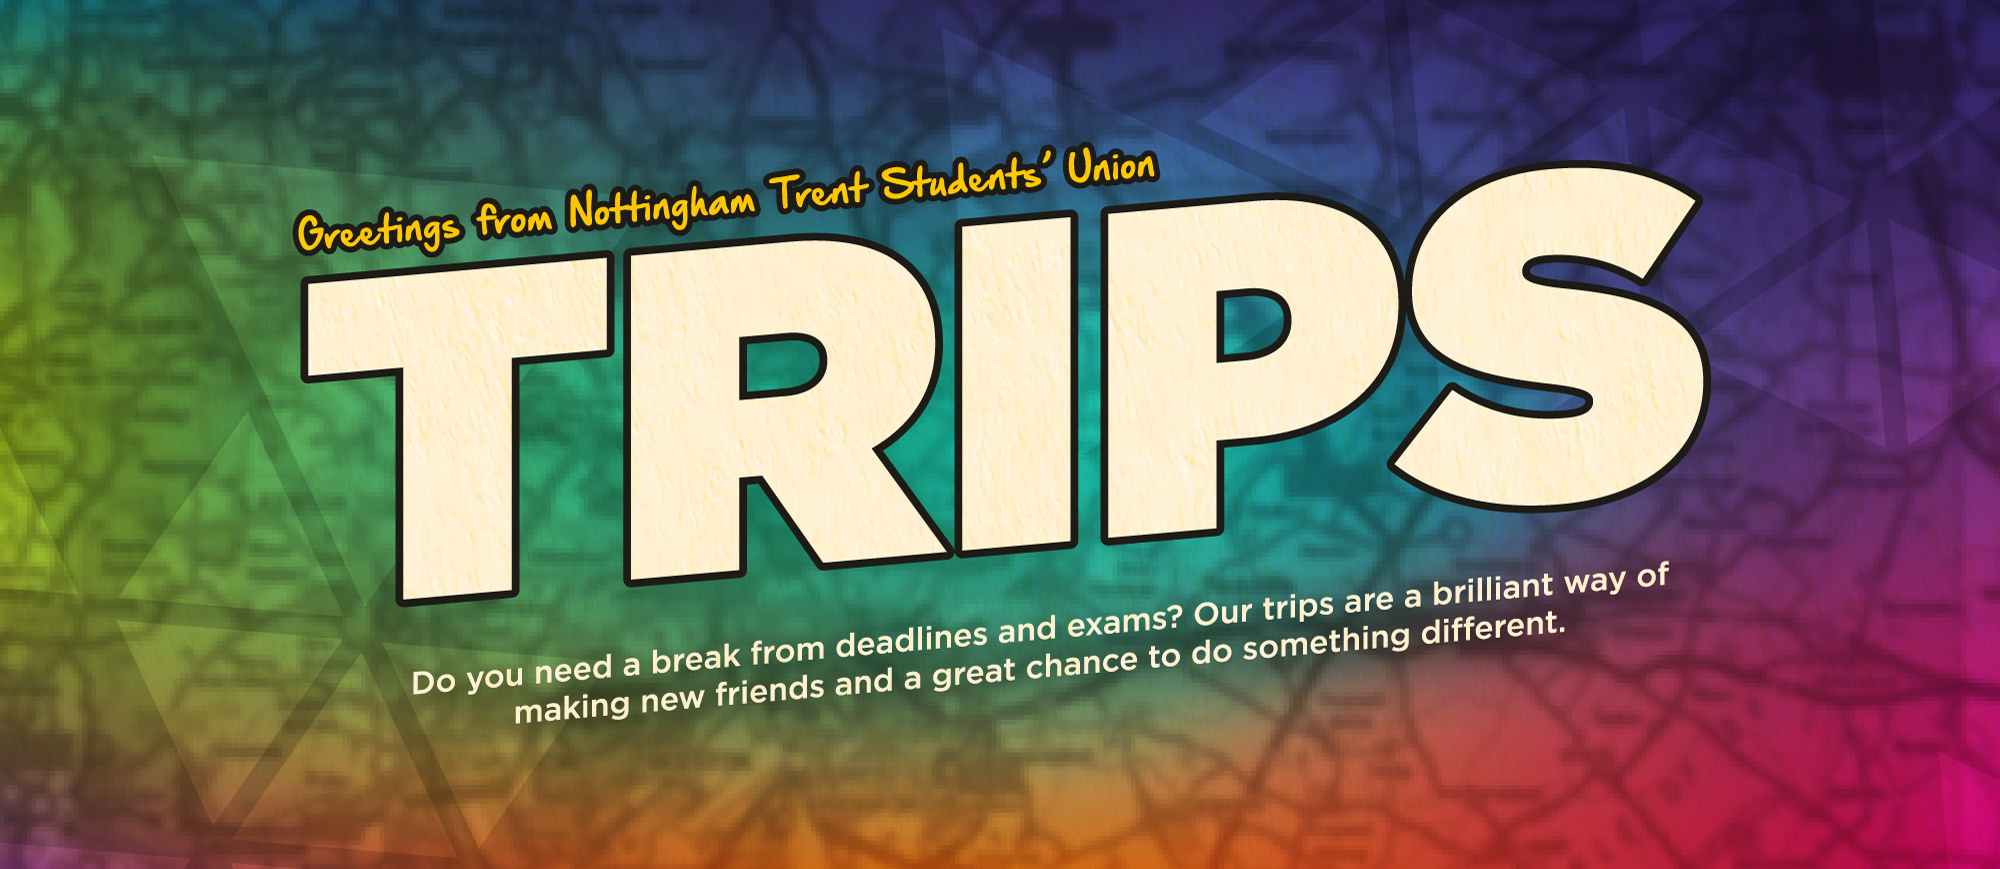 Greetings from Nottingham Trent Students' Union. Trips. Do you need a break from deadlines and exams? Our trips are a brilliant way of making new friends and a great chance to do something different.